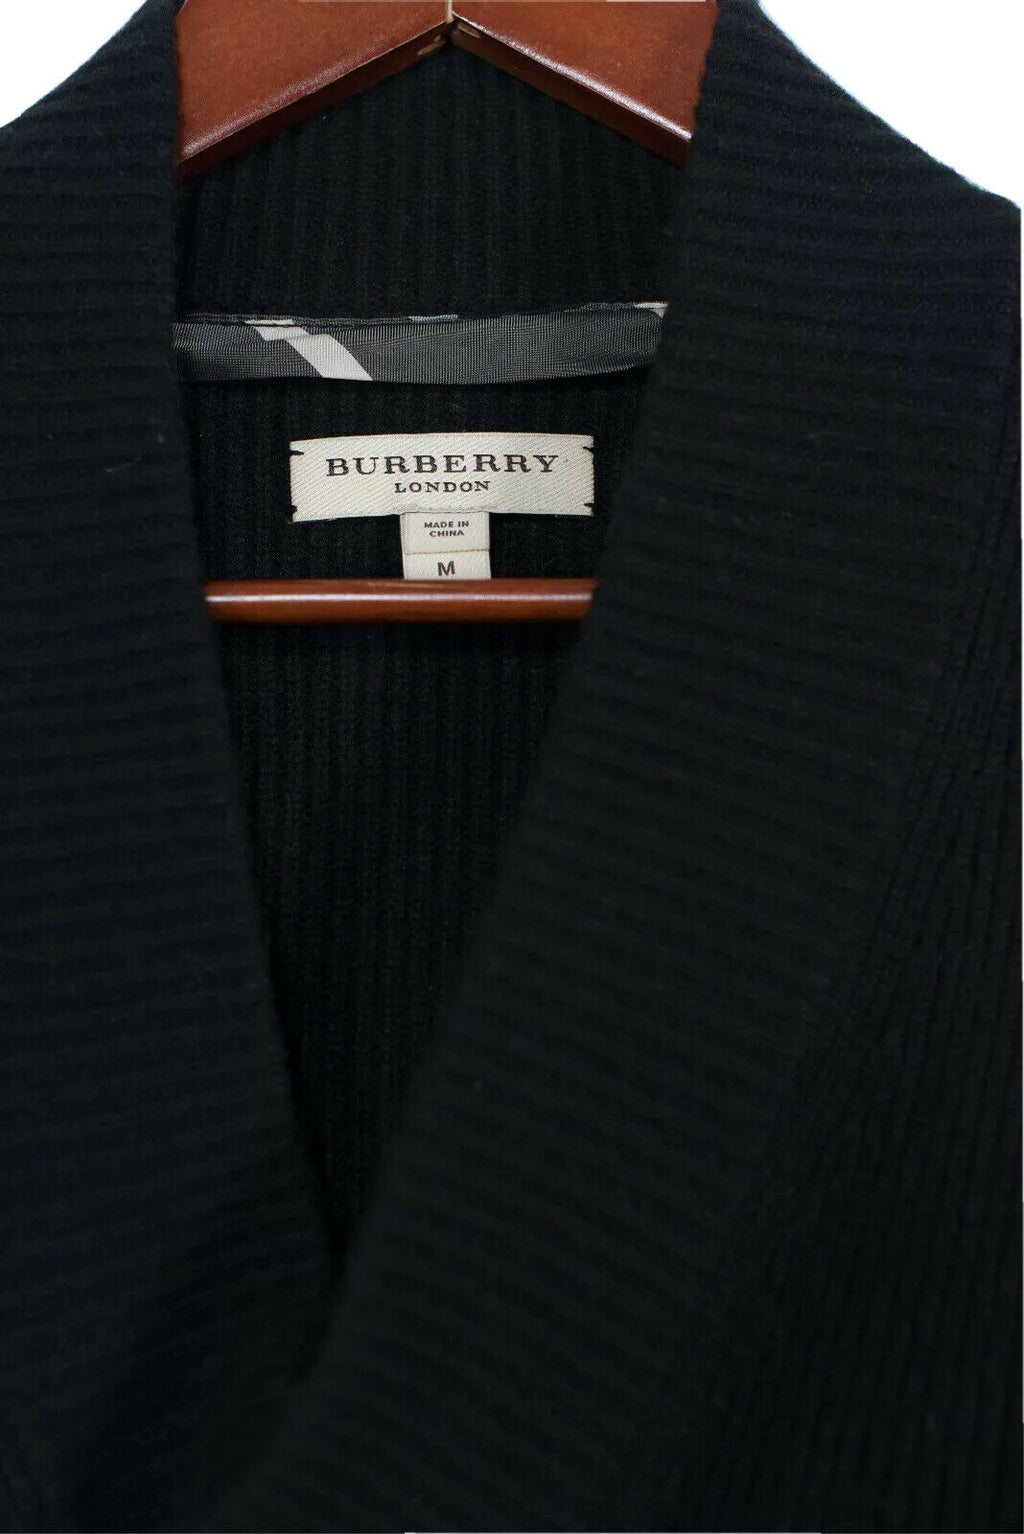 Burberry Womens Medium Black Cashmere Pullover Sweater